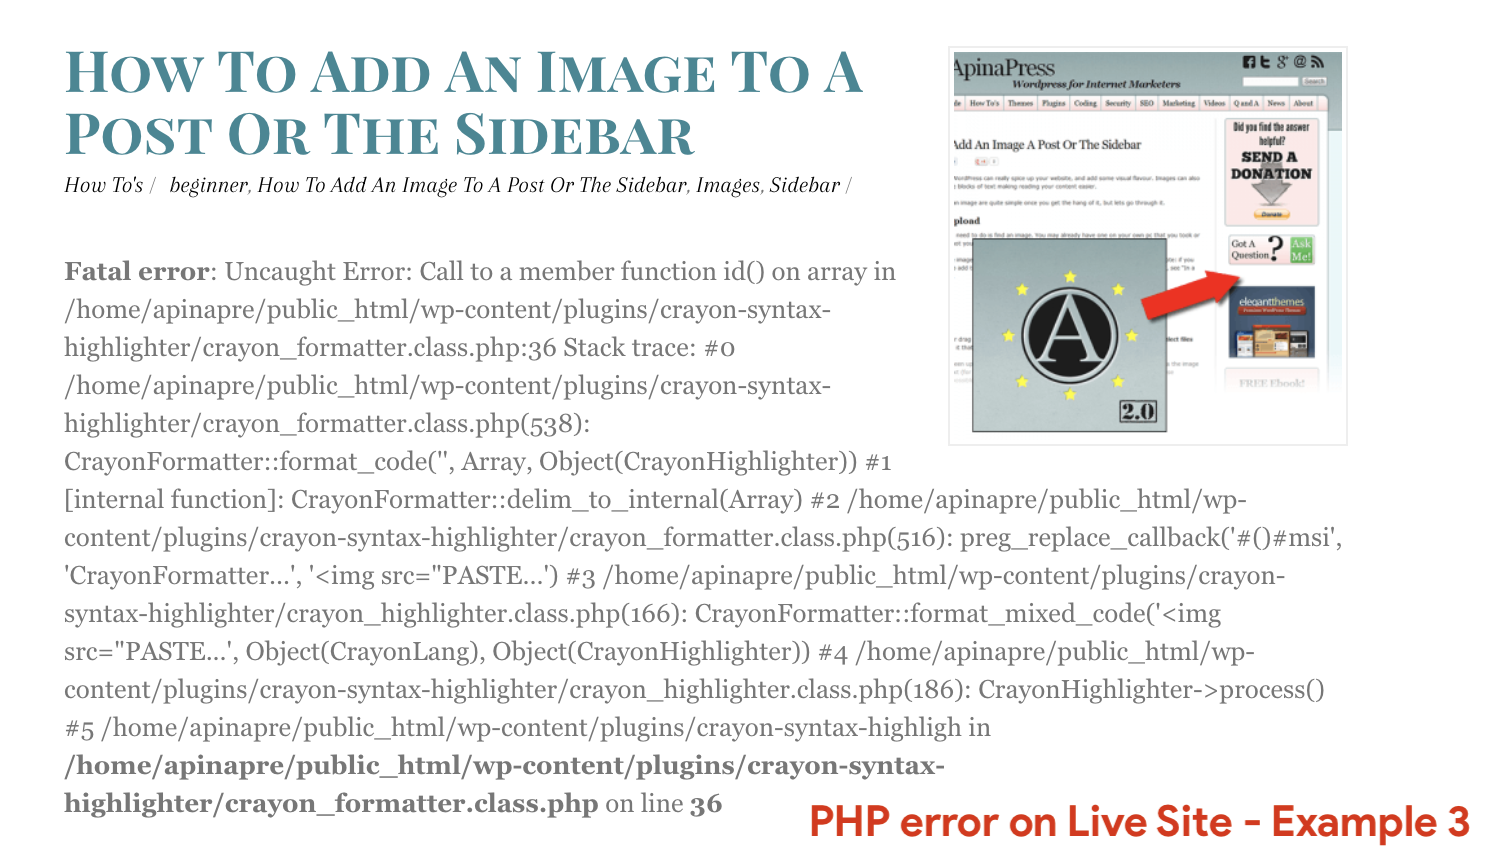 PHP error on Live Site - Example 3